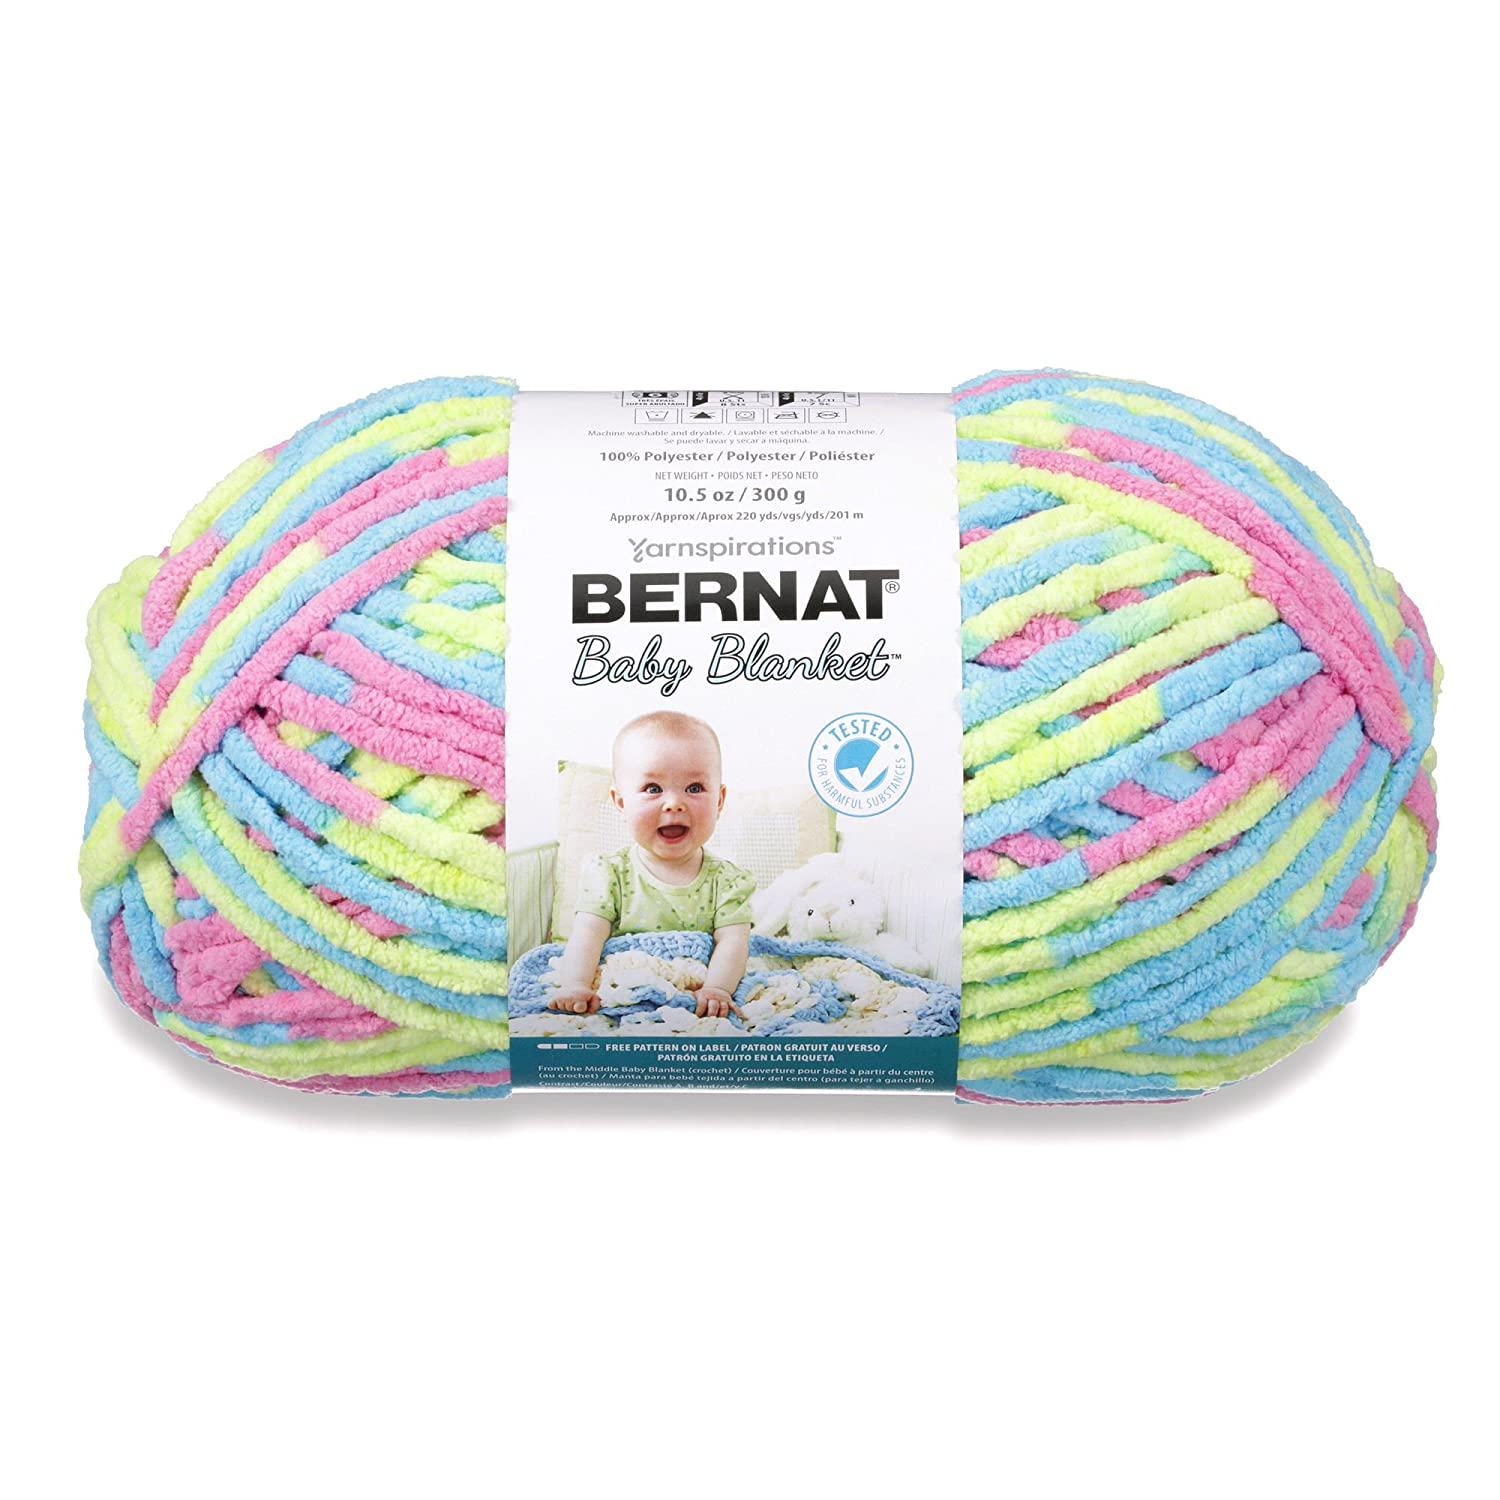 BERNAT BABY BLANKET -300G- JELLY BEANS: Amazon.co.uk: Kitchen & Home